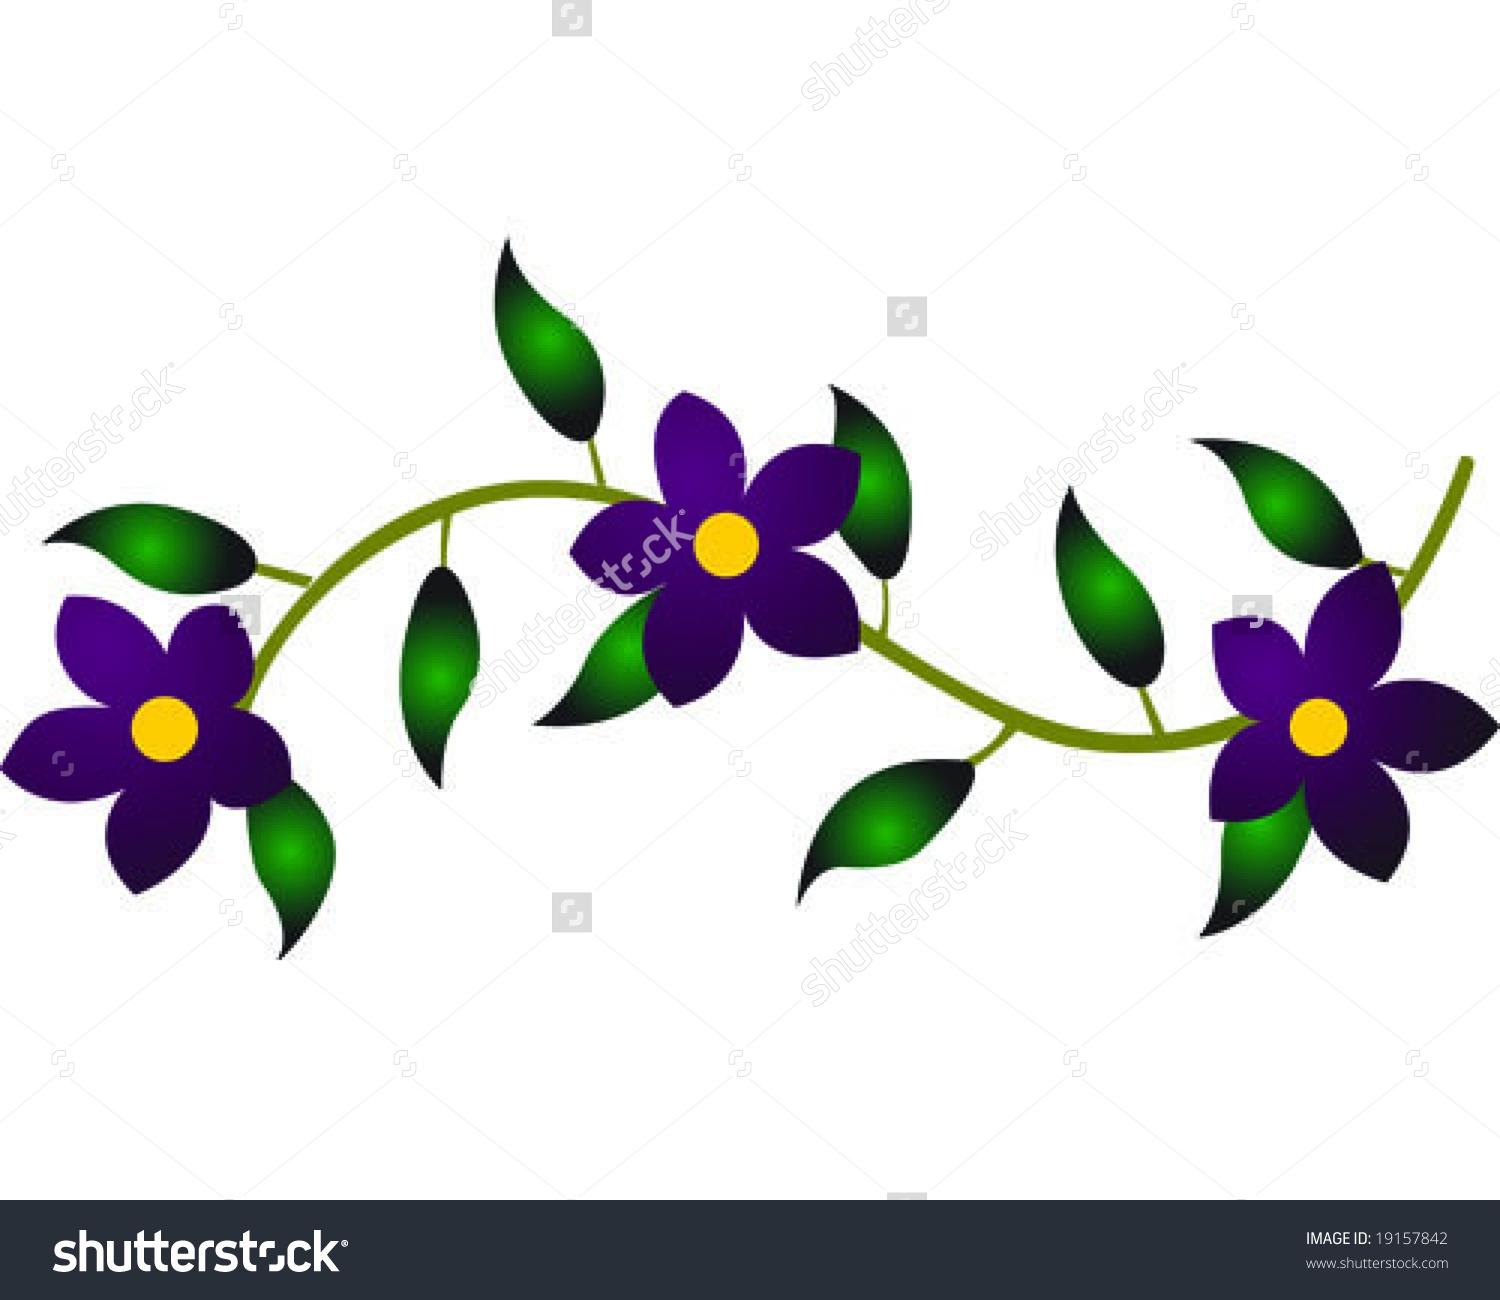 Clipart flowers and vines picture download Clipart vines and flowers - ClipartFest picture download